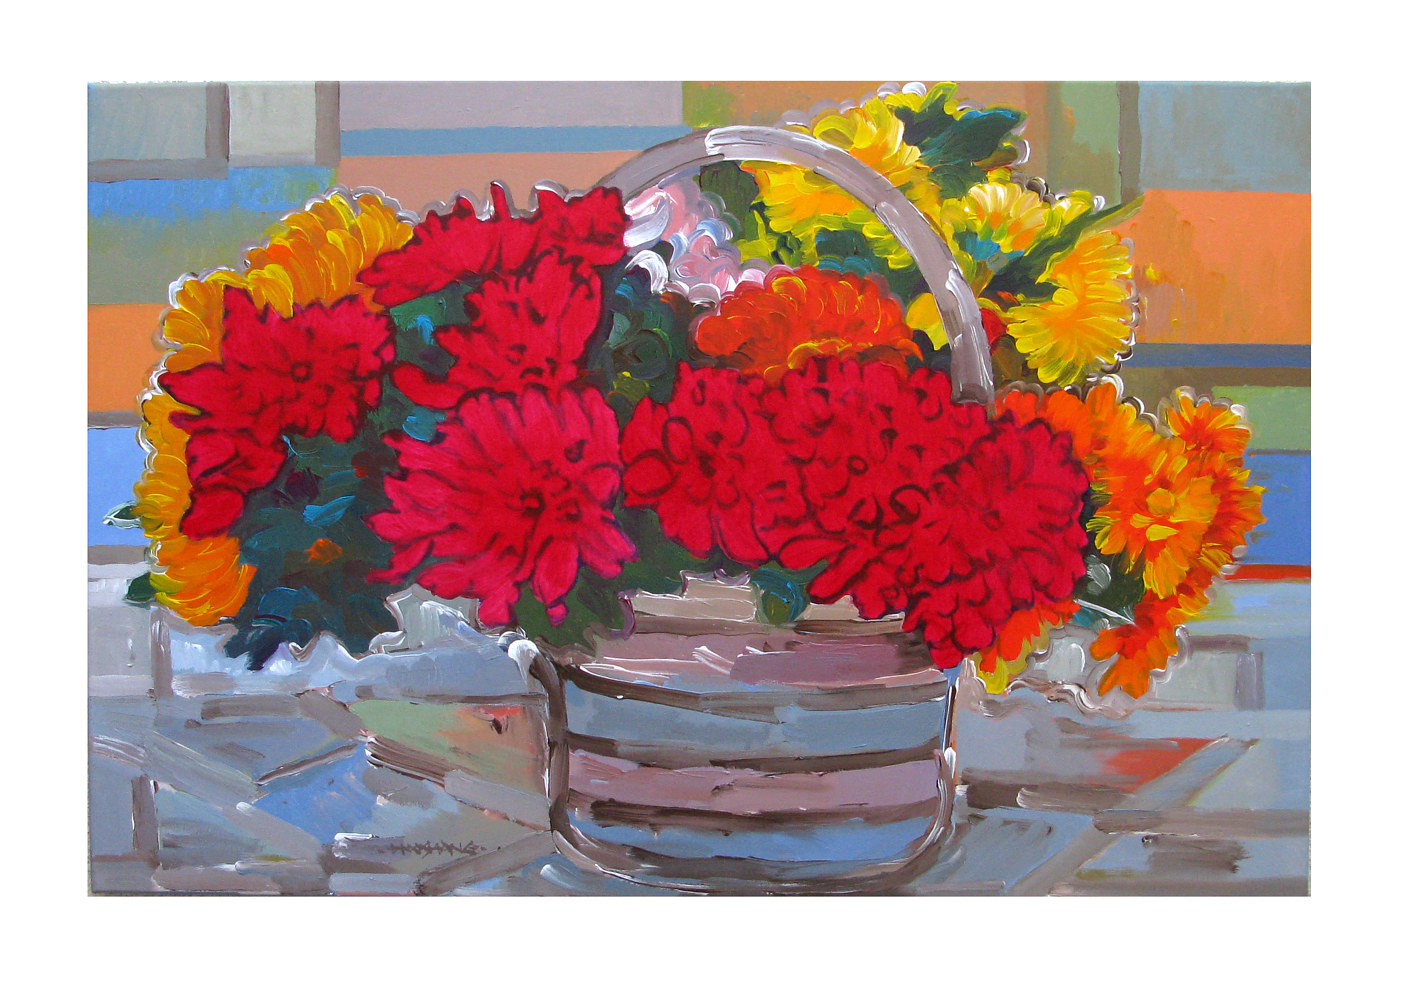 Acrylic painting Basket of Color. 24x36 inches by Hooshang Khorasani